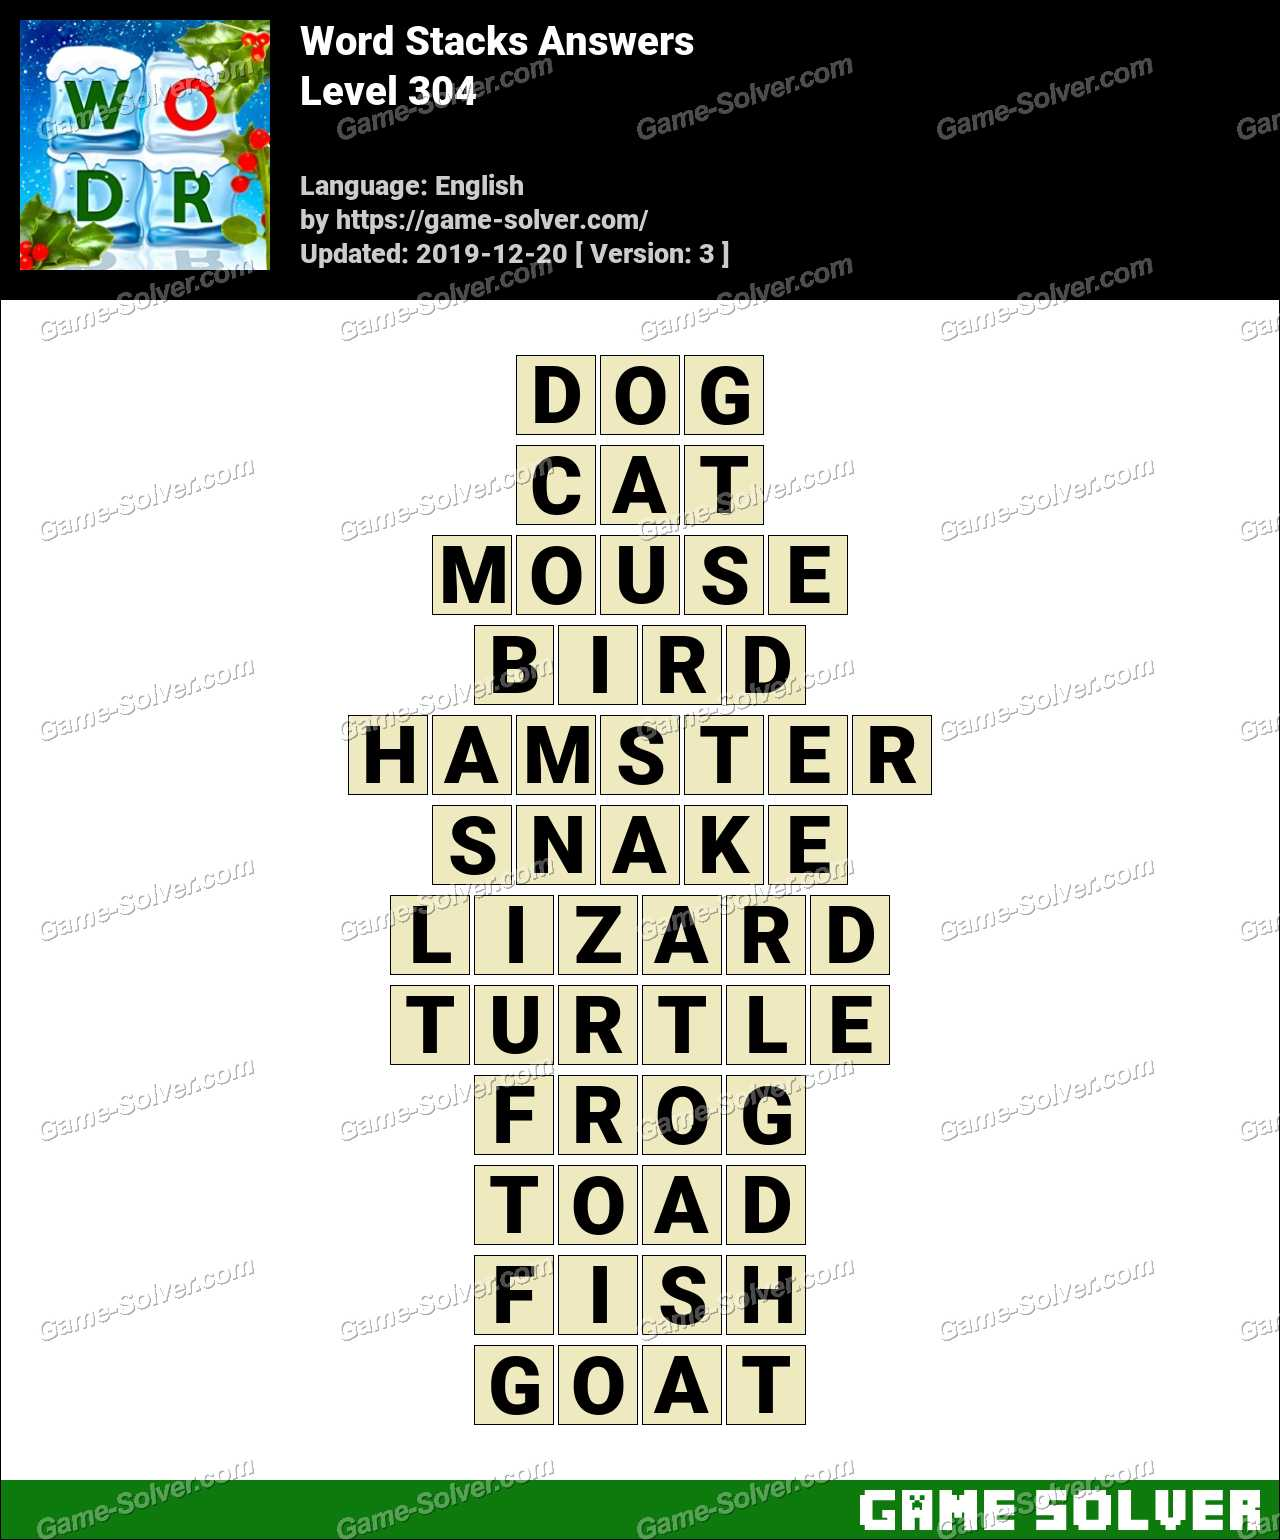 Word Stacks Level 304 Answers